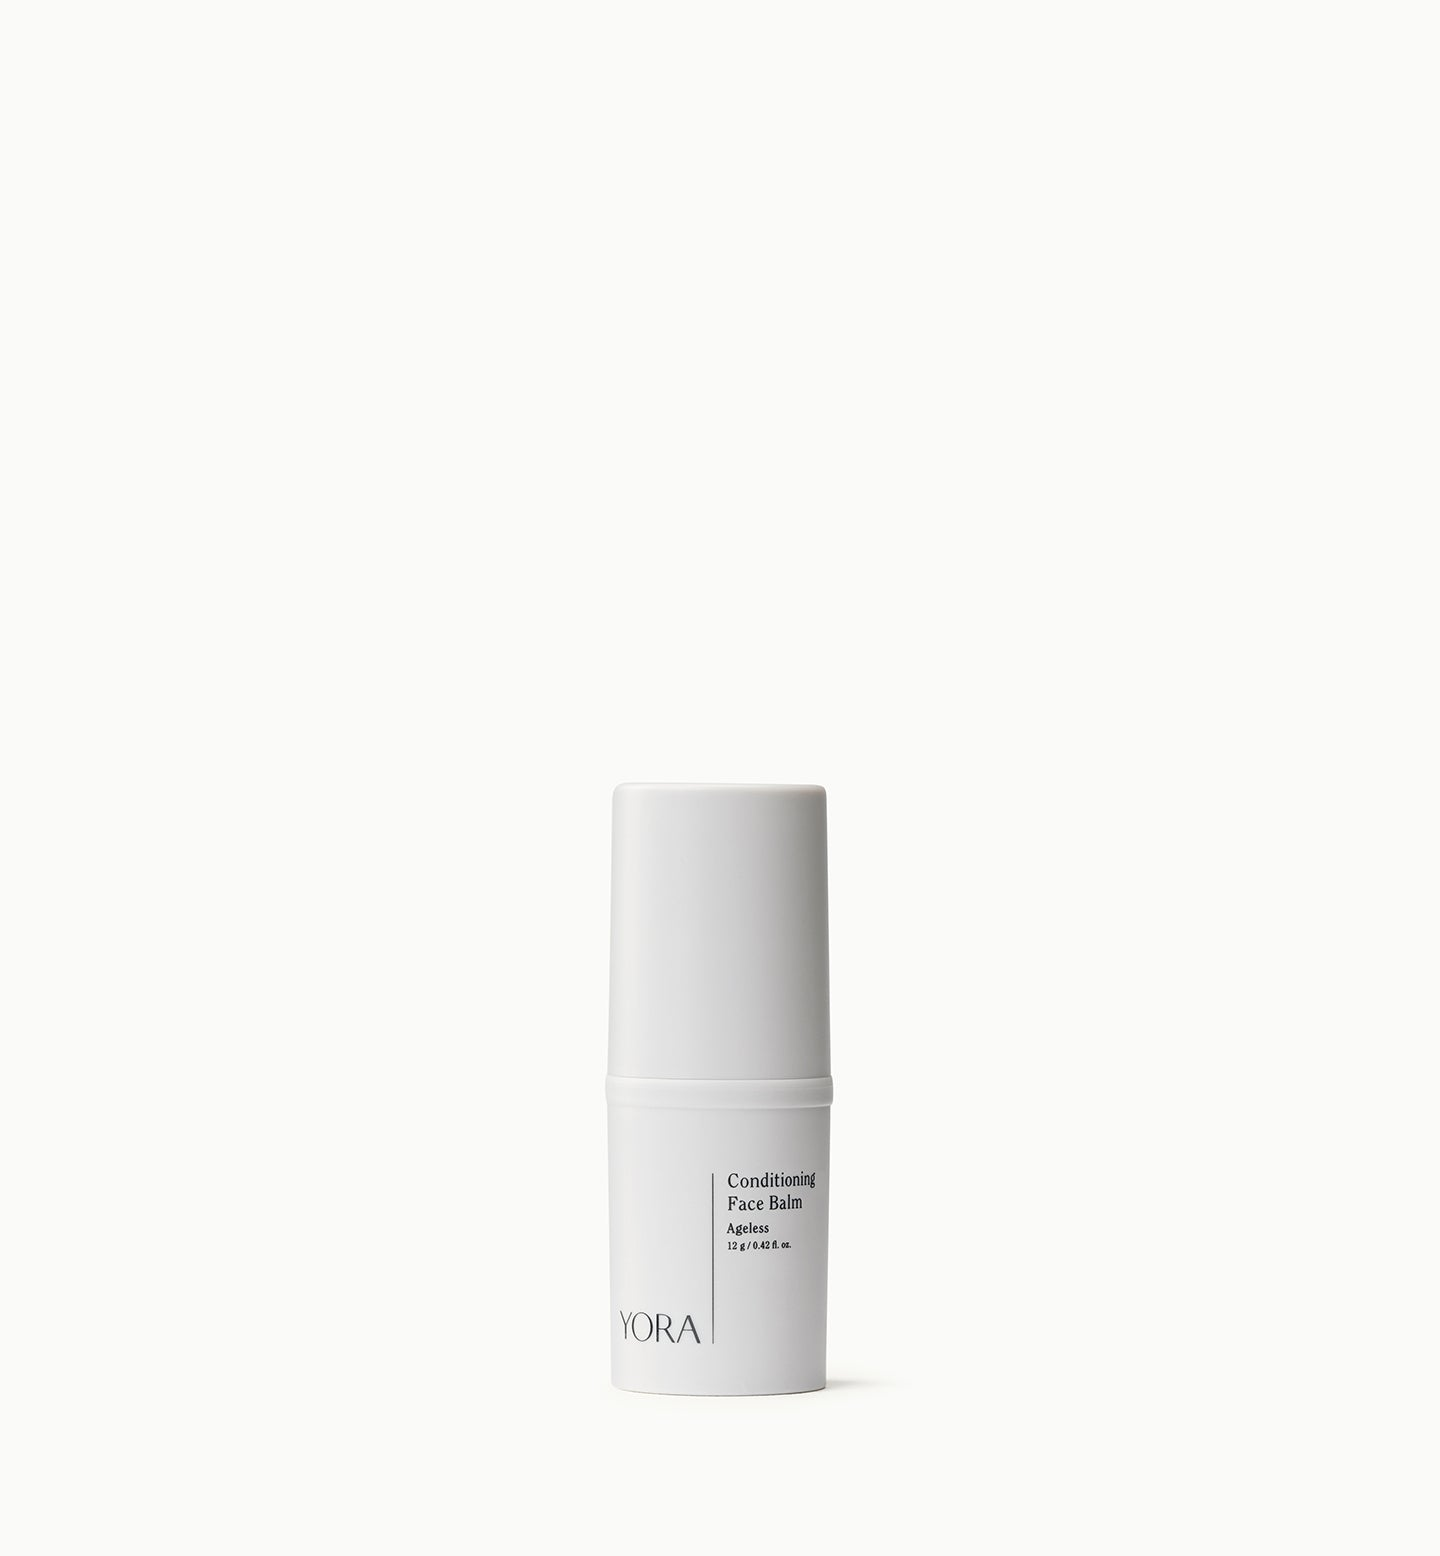 Conditioning Face Balm - Front